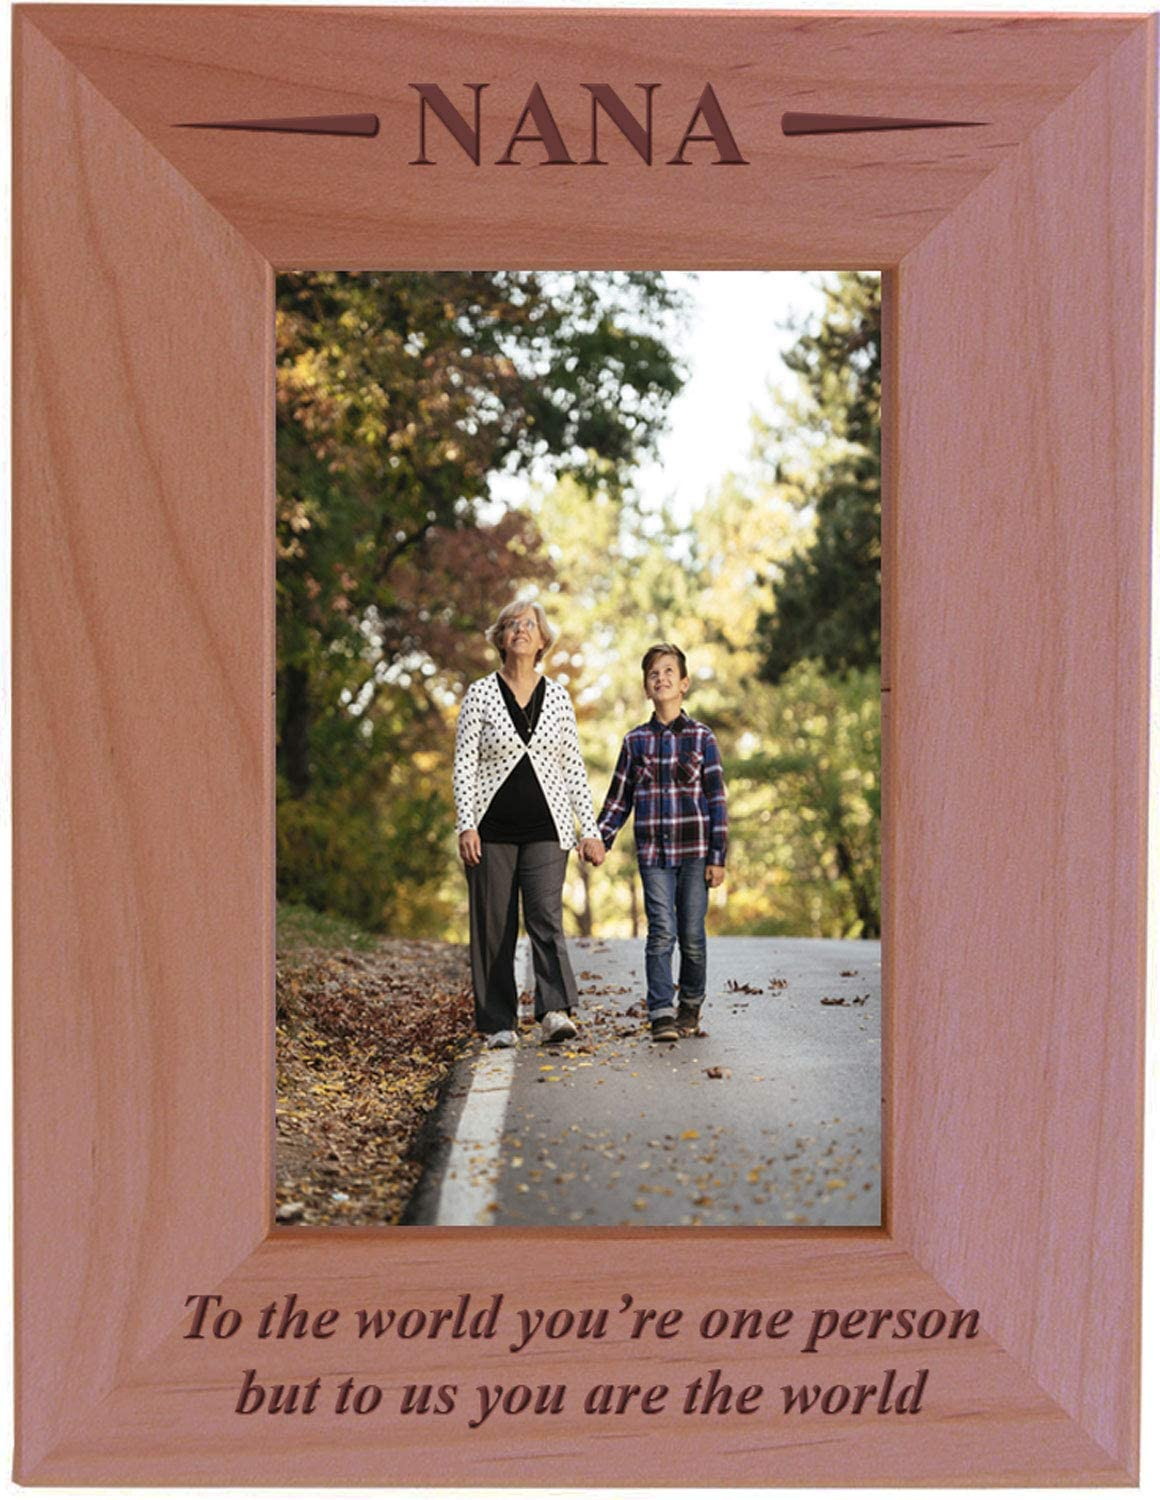 CustomGiftsNow Nana Oakland Mall - to The World one but Person Y You're 5 popular us